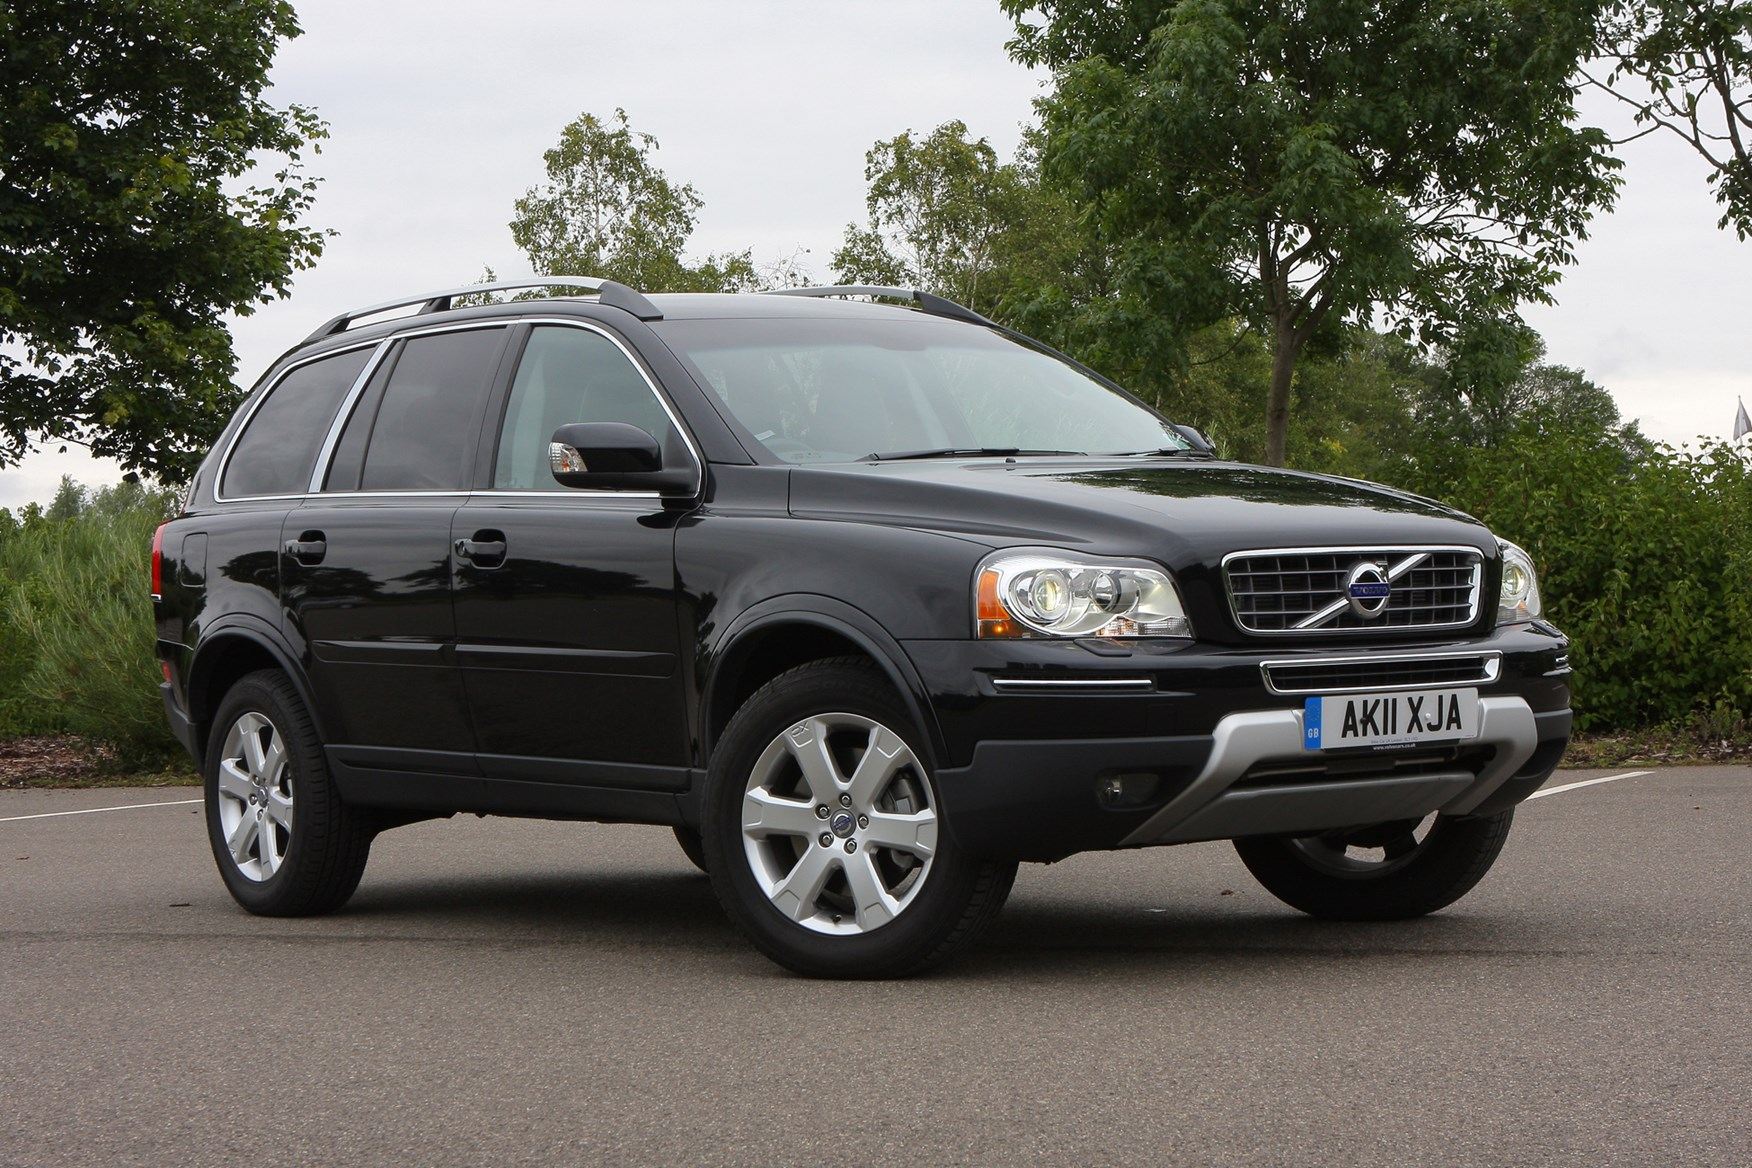 Volvo XC90 Estate Review (2002 - 2014) | Parkers